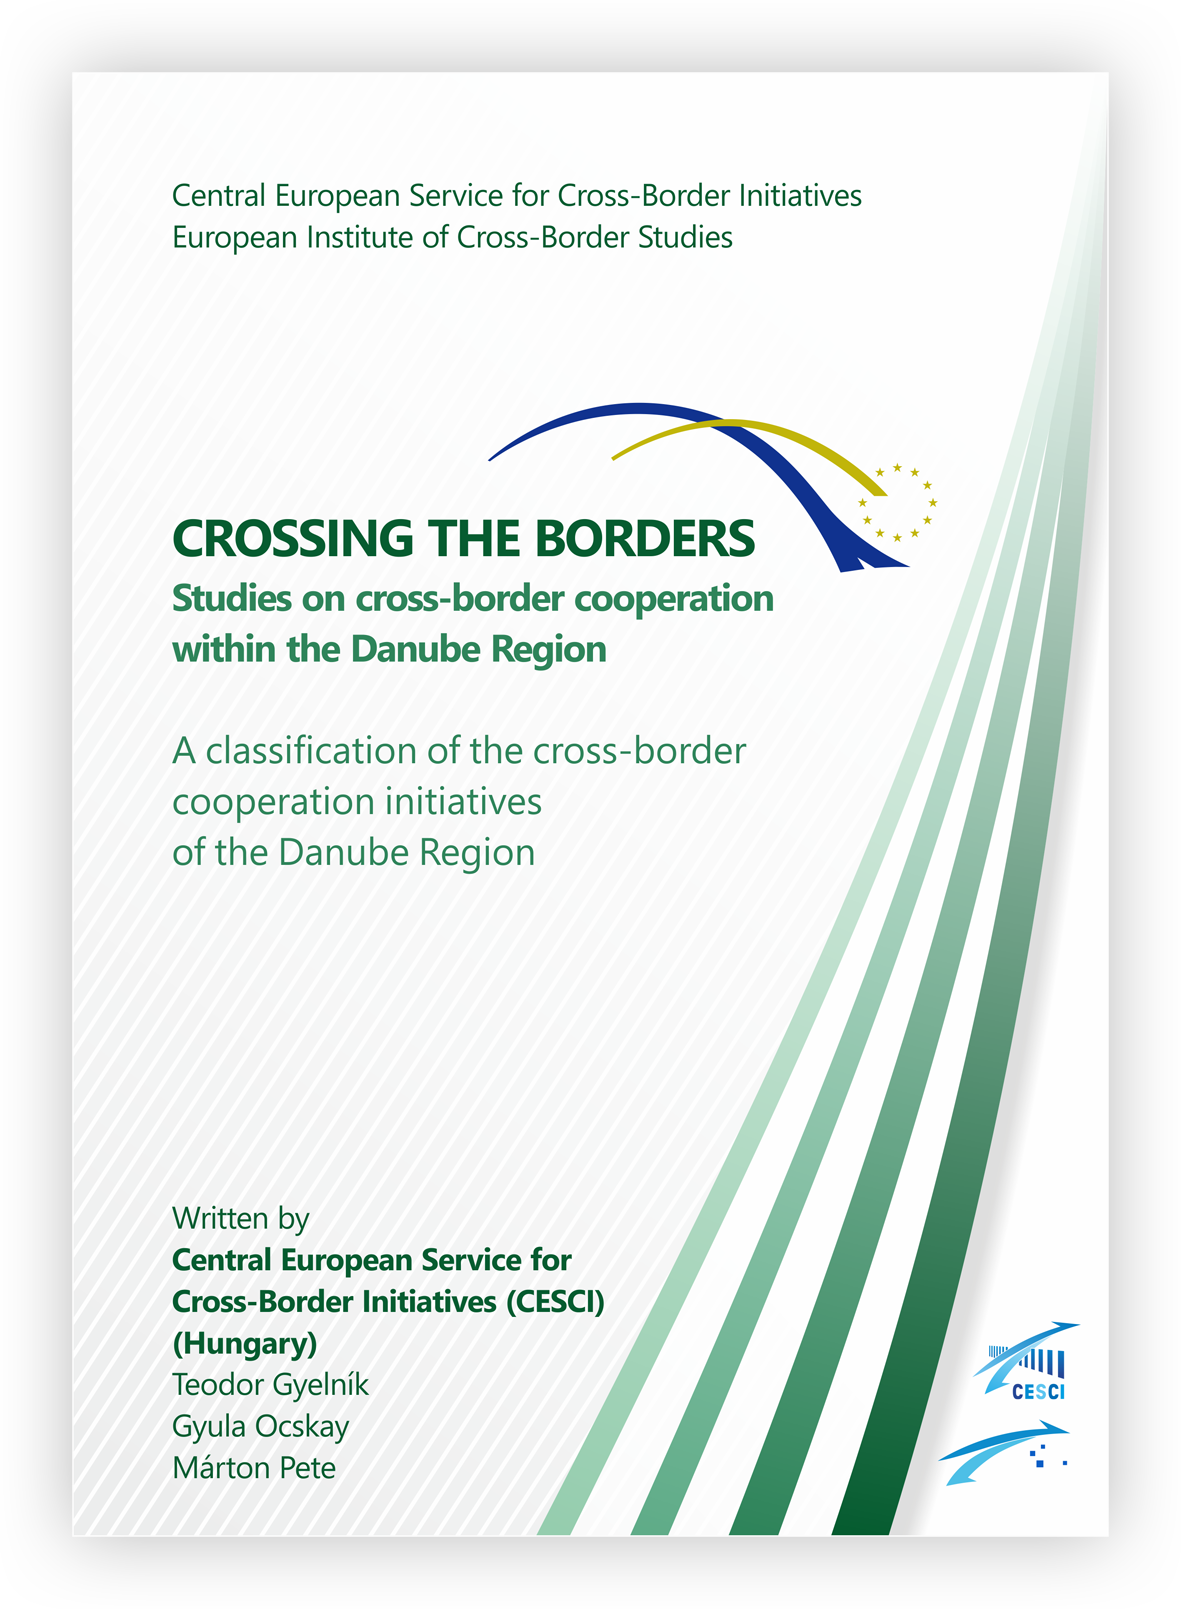 A classification of the cross-border cooperation initiatives of the Danube Region